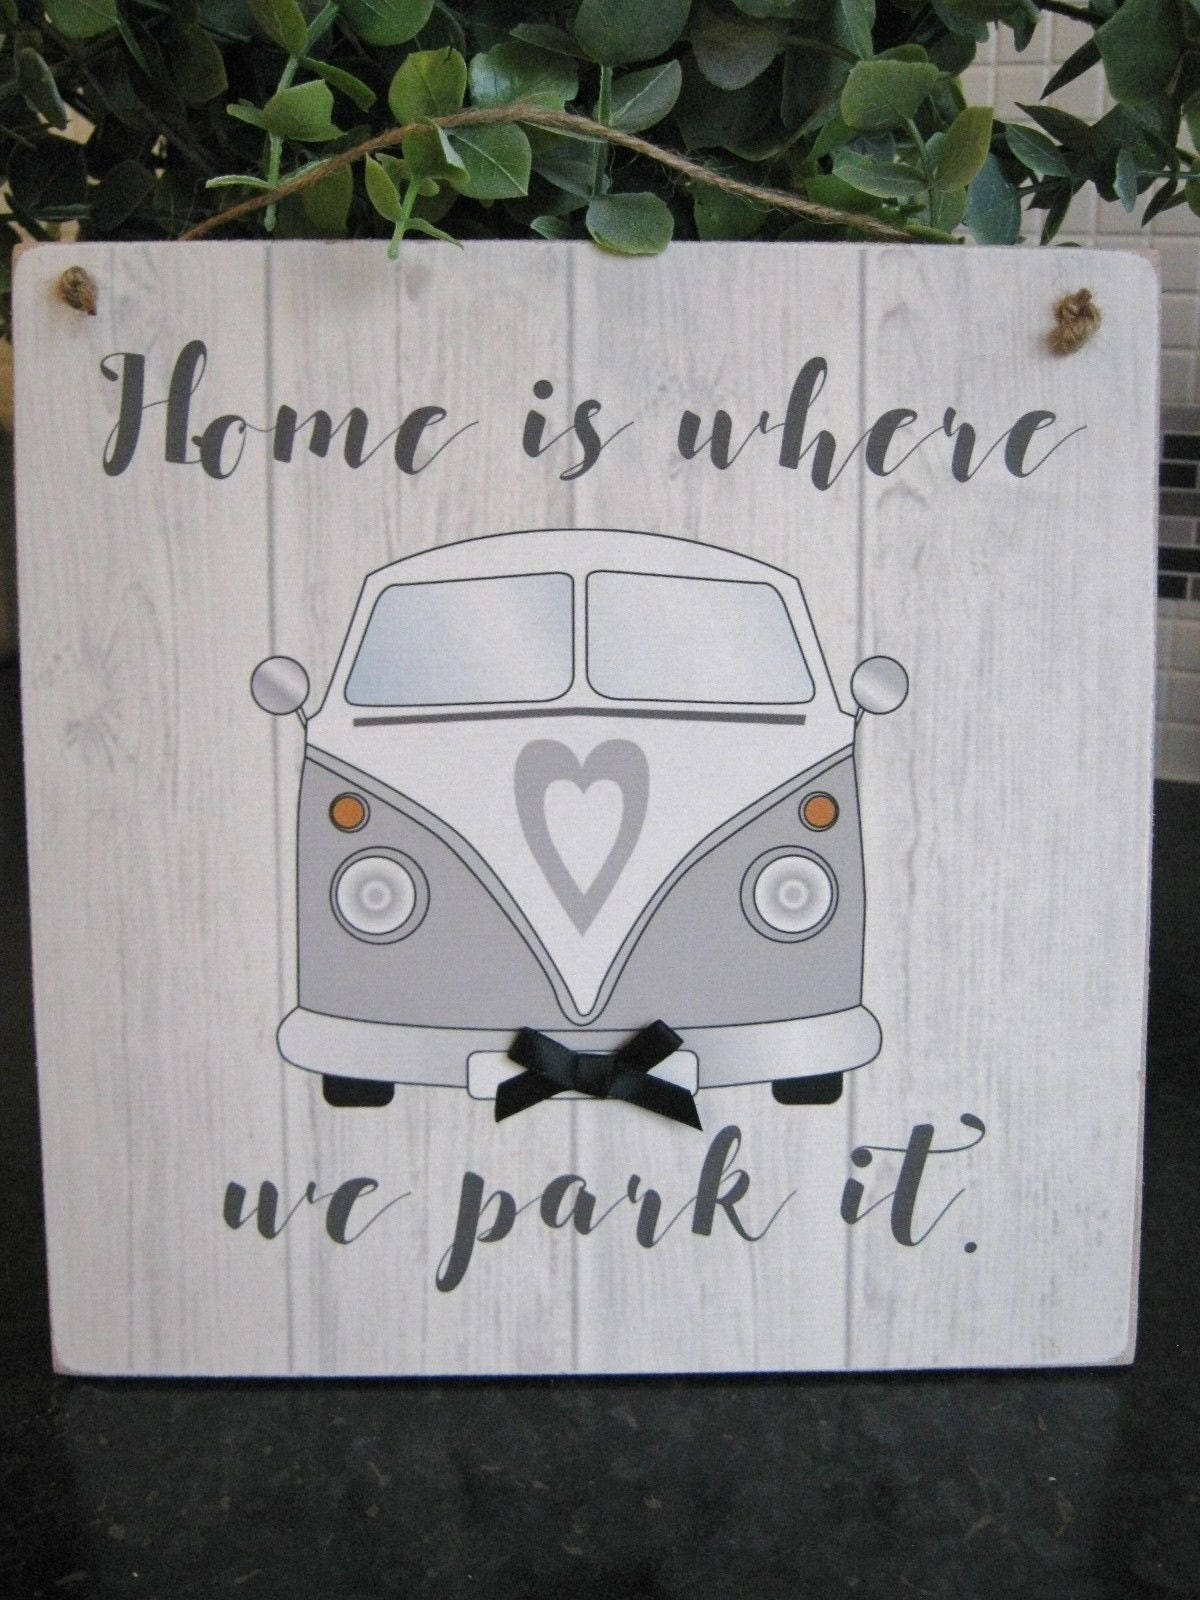 Vw Quote Vw Camper Van Where We Park It Quote Wall Plaque Rustic Wood Gift